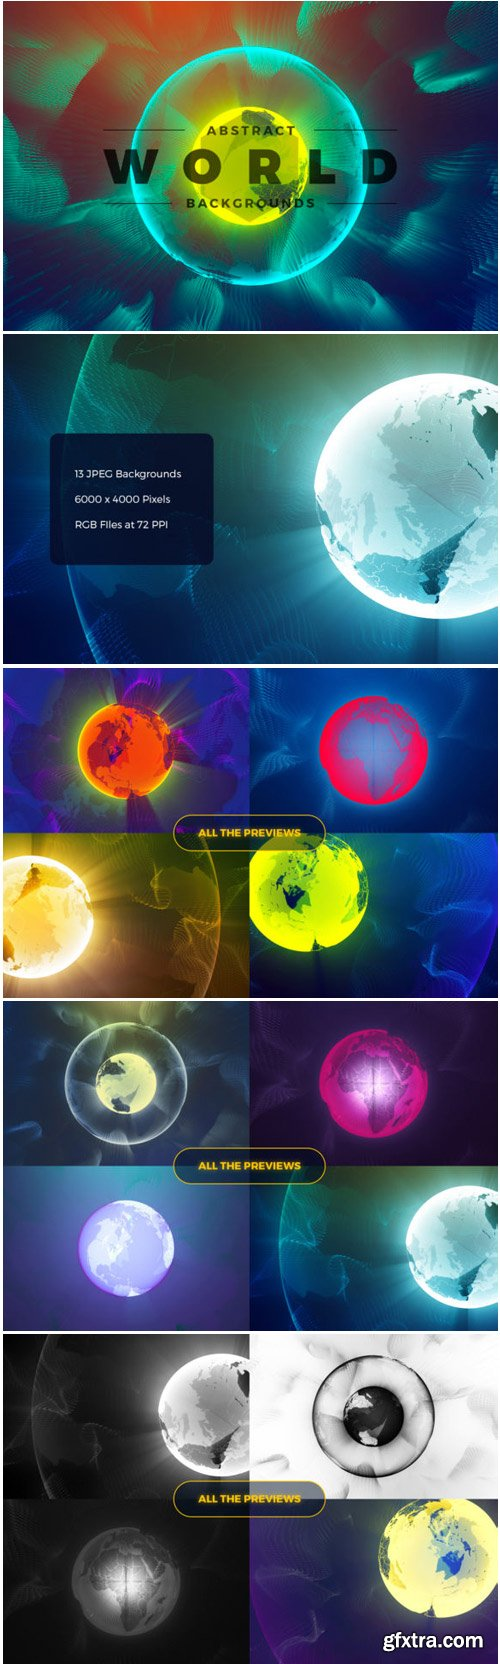 Abstract World & Particles Backgrounds 1705647